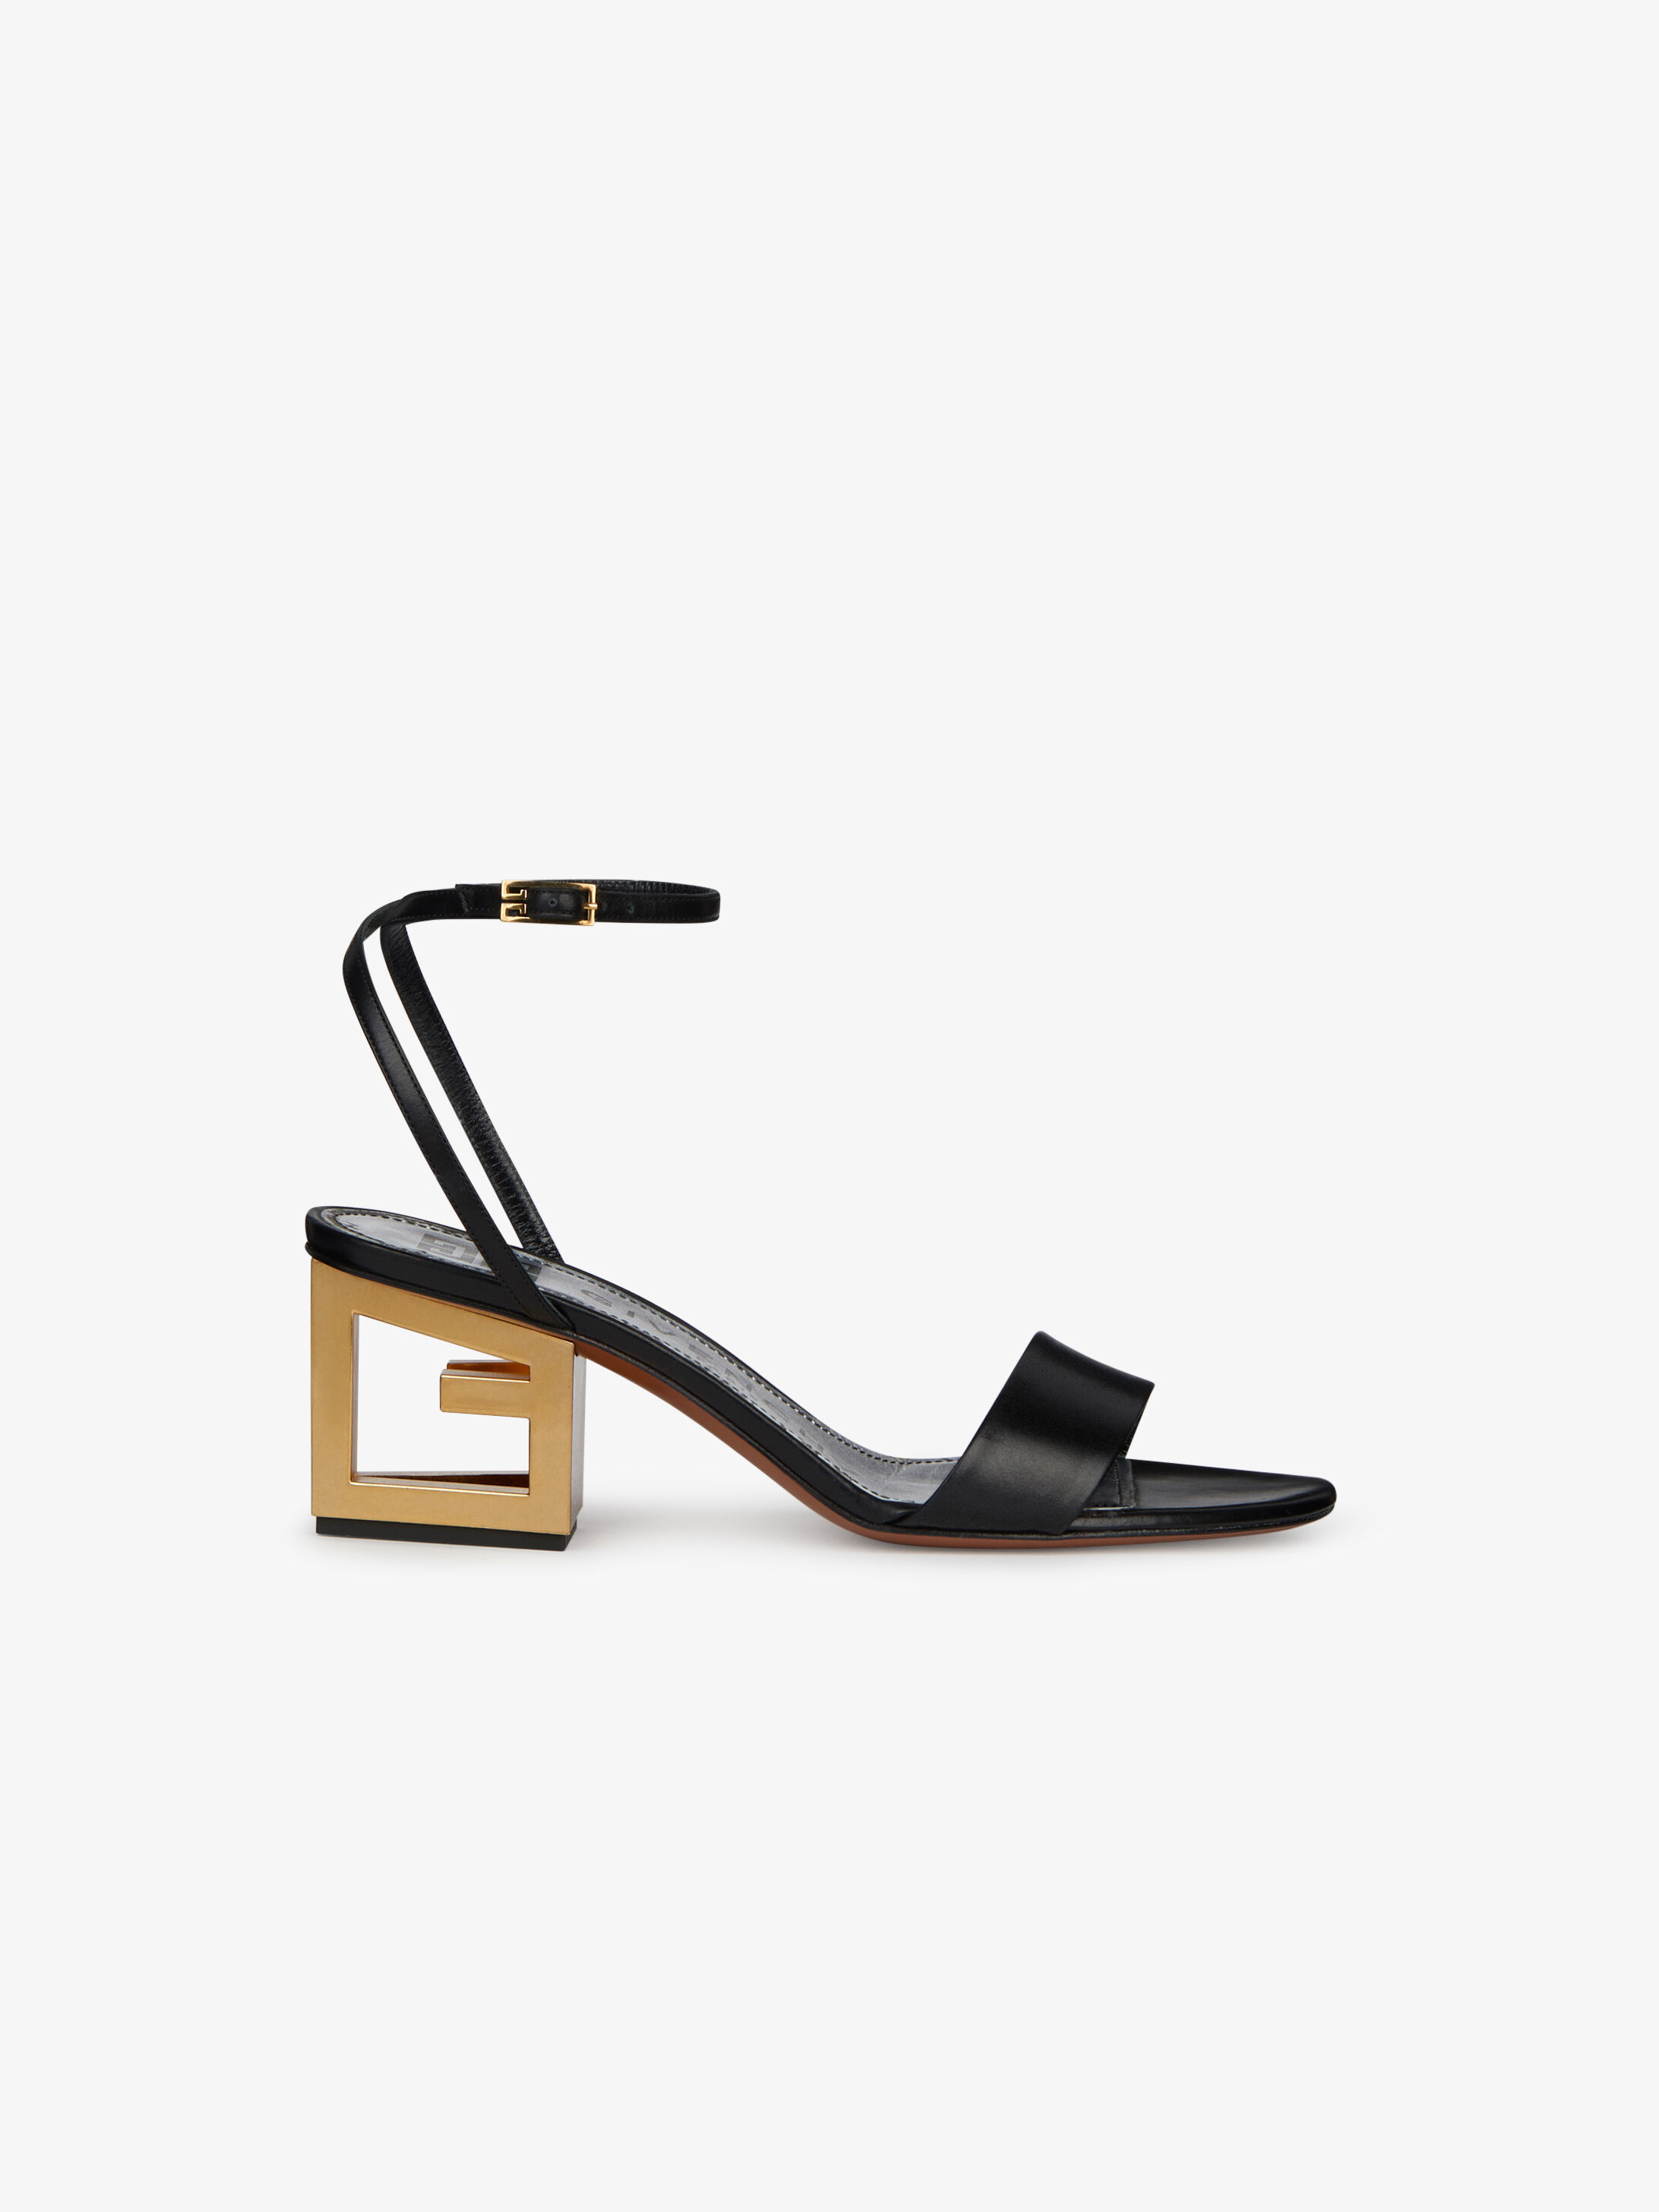 0d0161971071 Women s Sandals and Pumps collection by Givenchy.